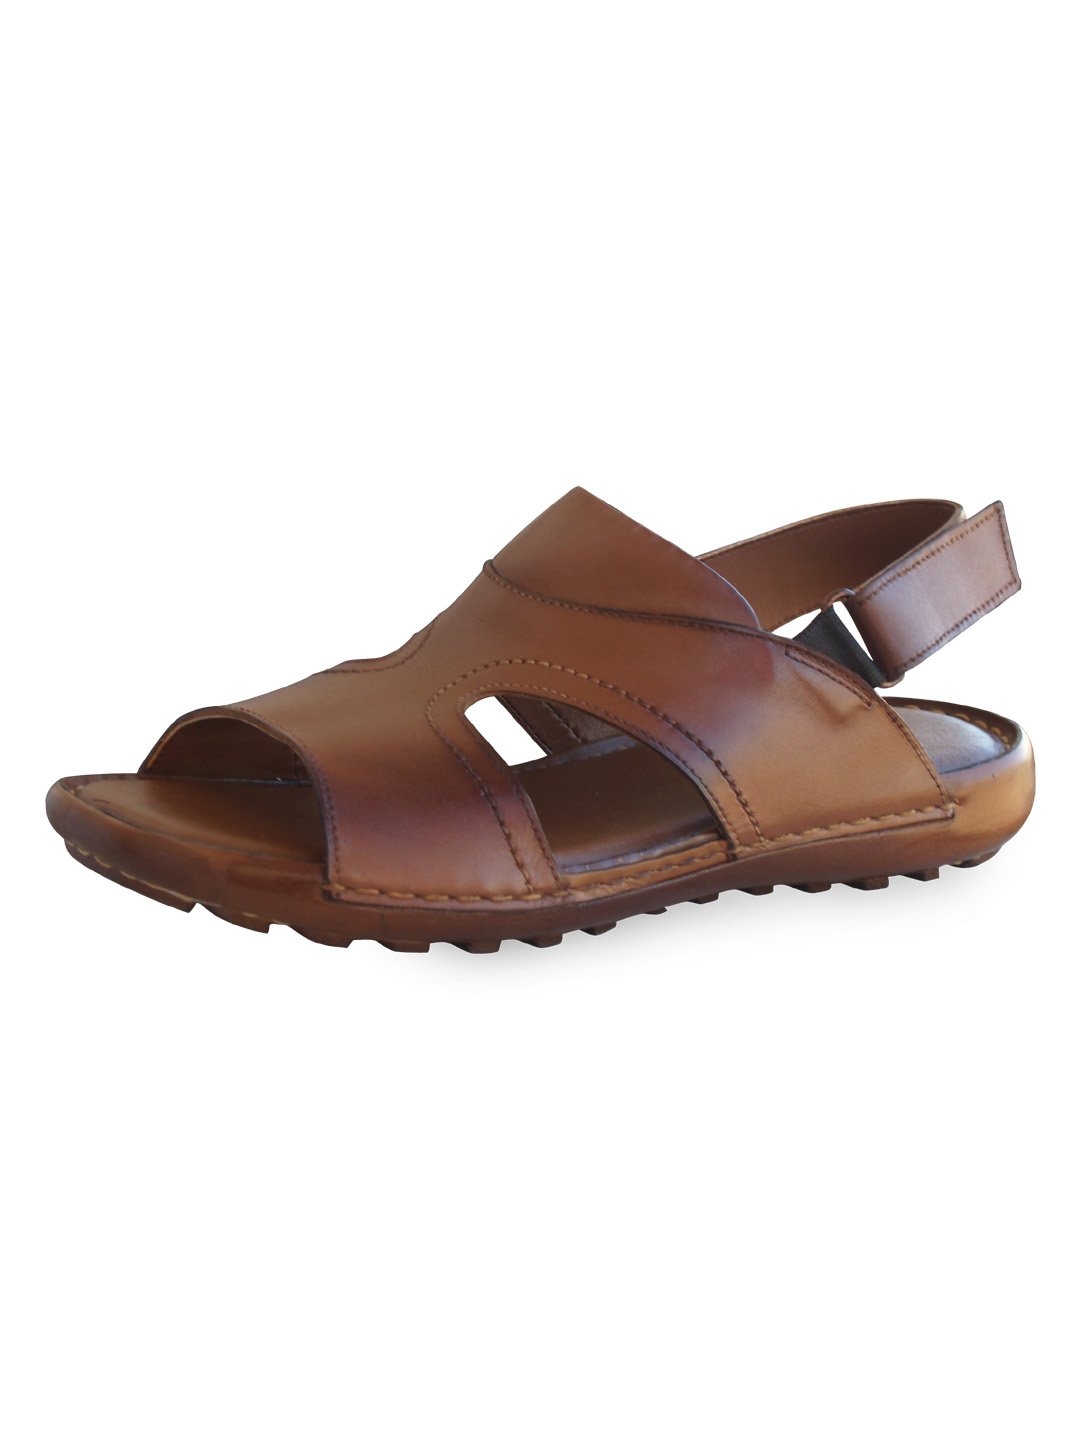 c2ac9ad2b MENS SANDALS - EBH - Art of Leather